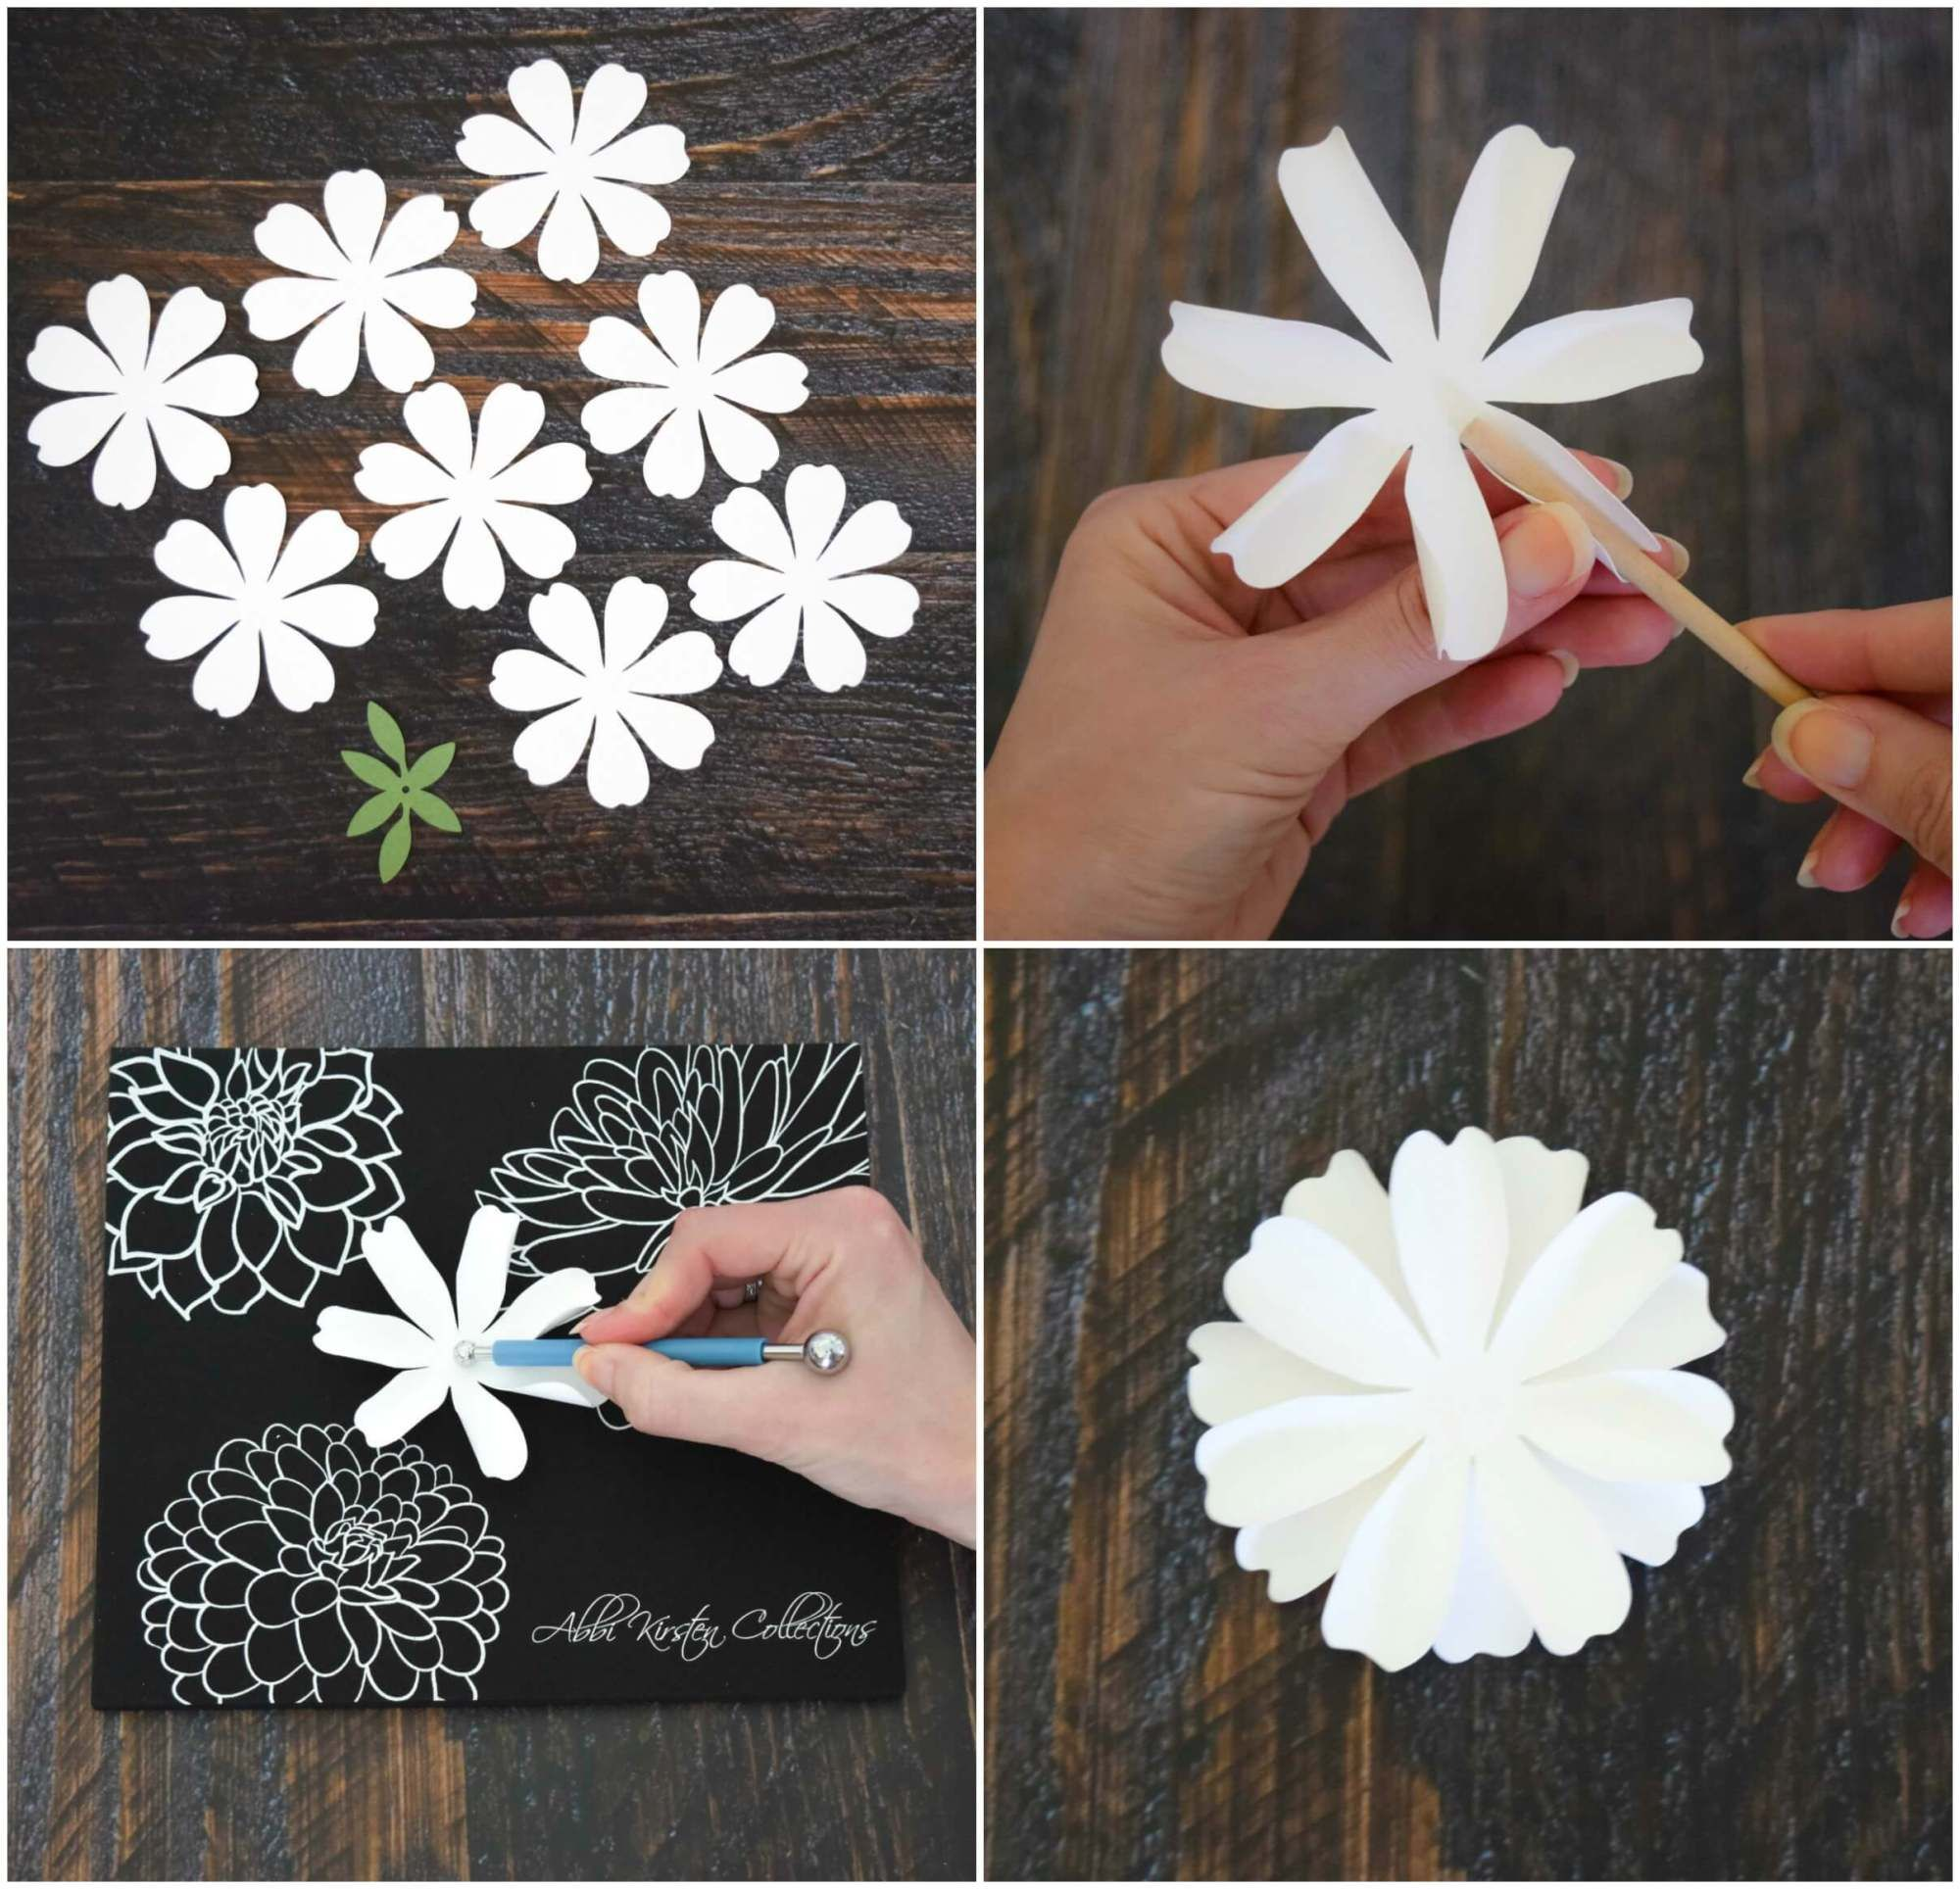 How To Make Paper Dahlia Flowers Small Paper Flower Tutorial Paper Flower Tutorial Paper Dahlia Paper Flowers Diy